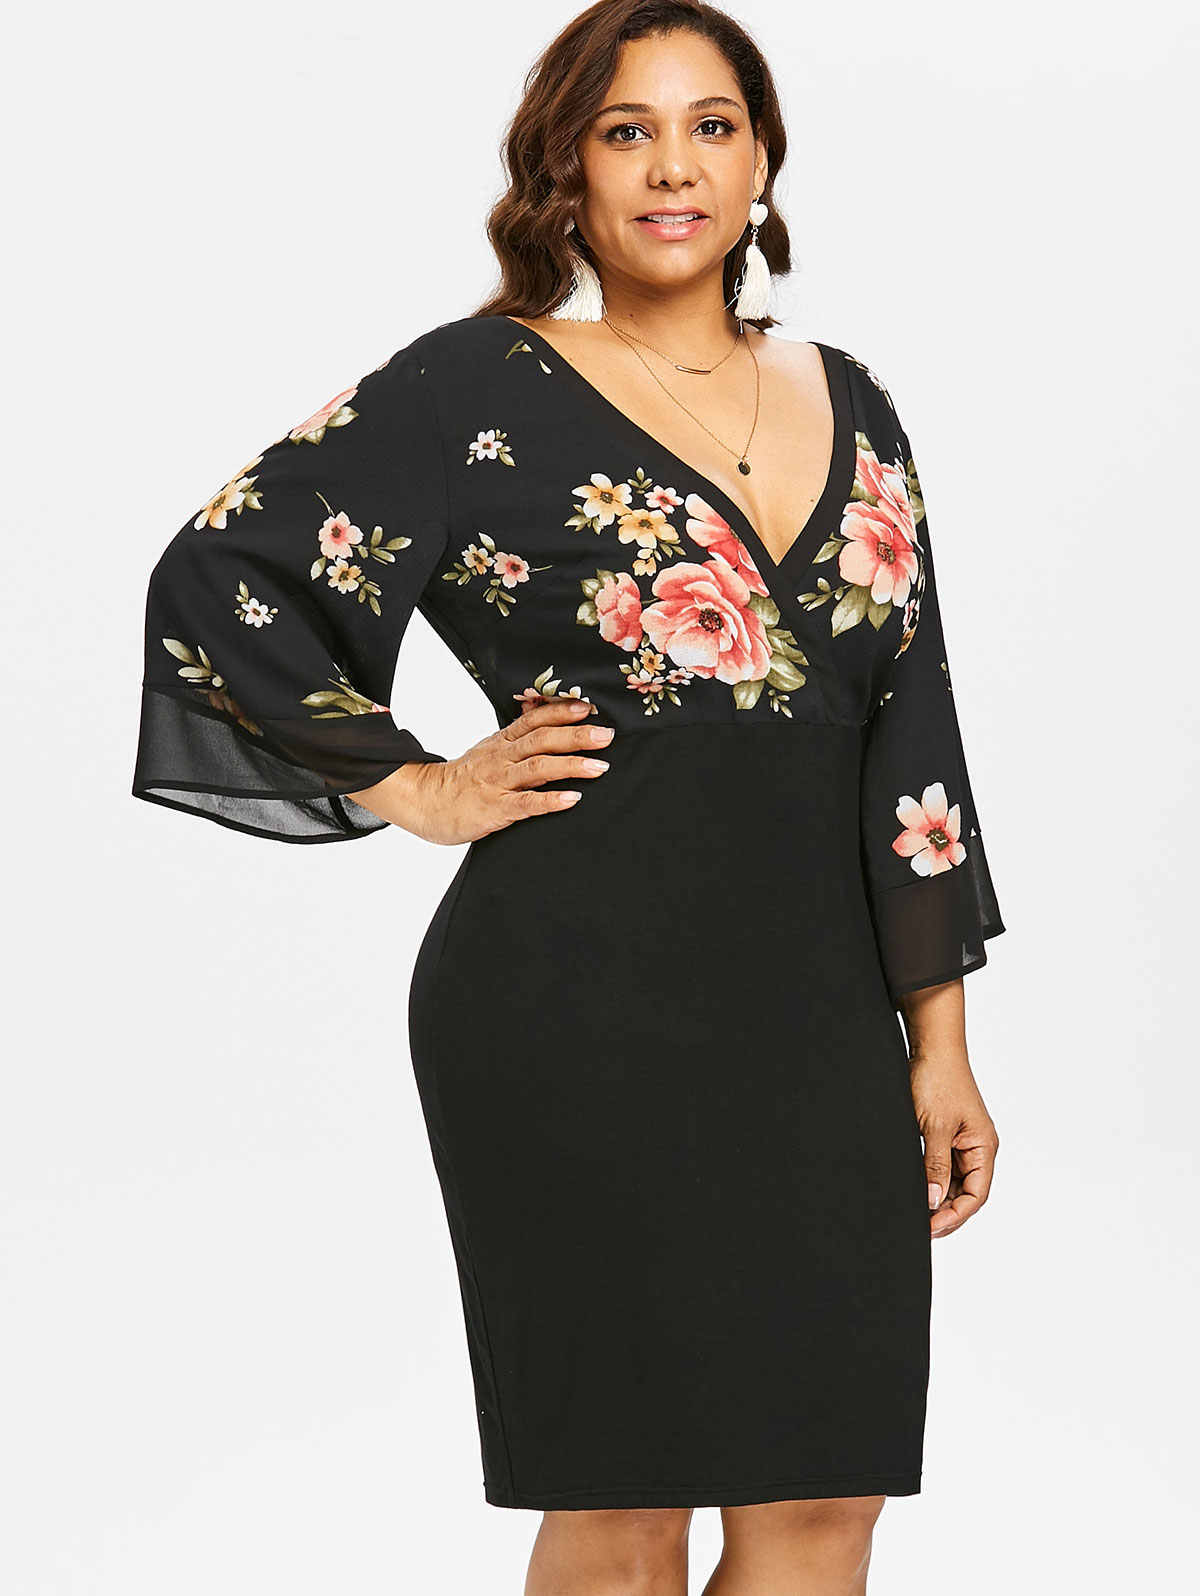 ... Gamiss Women Plus Size 5XL Bell Sleeve Low Cut Floral Dress Plunging  Neck 3 4 ... e79426246d2a